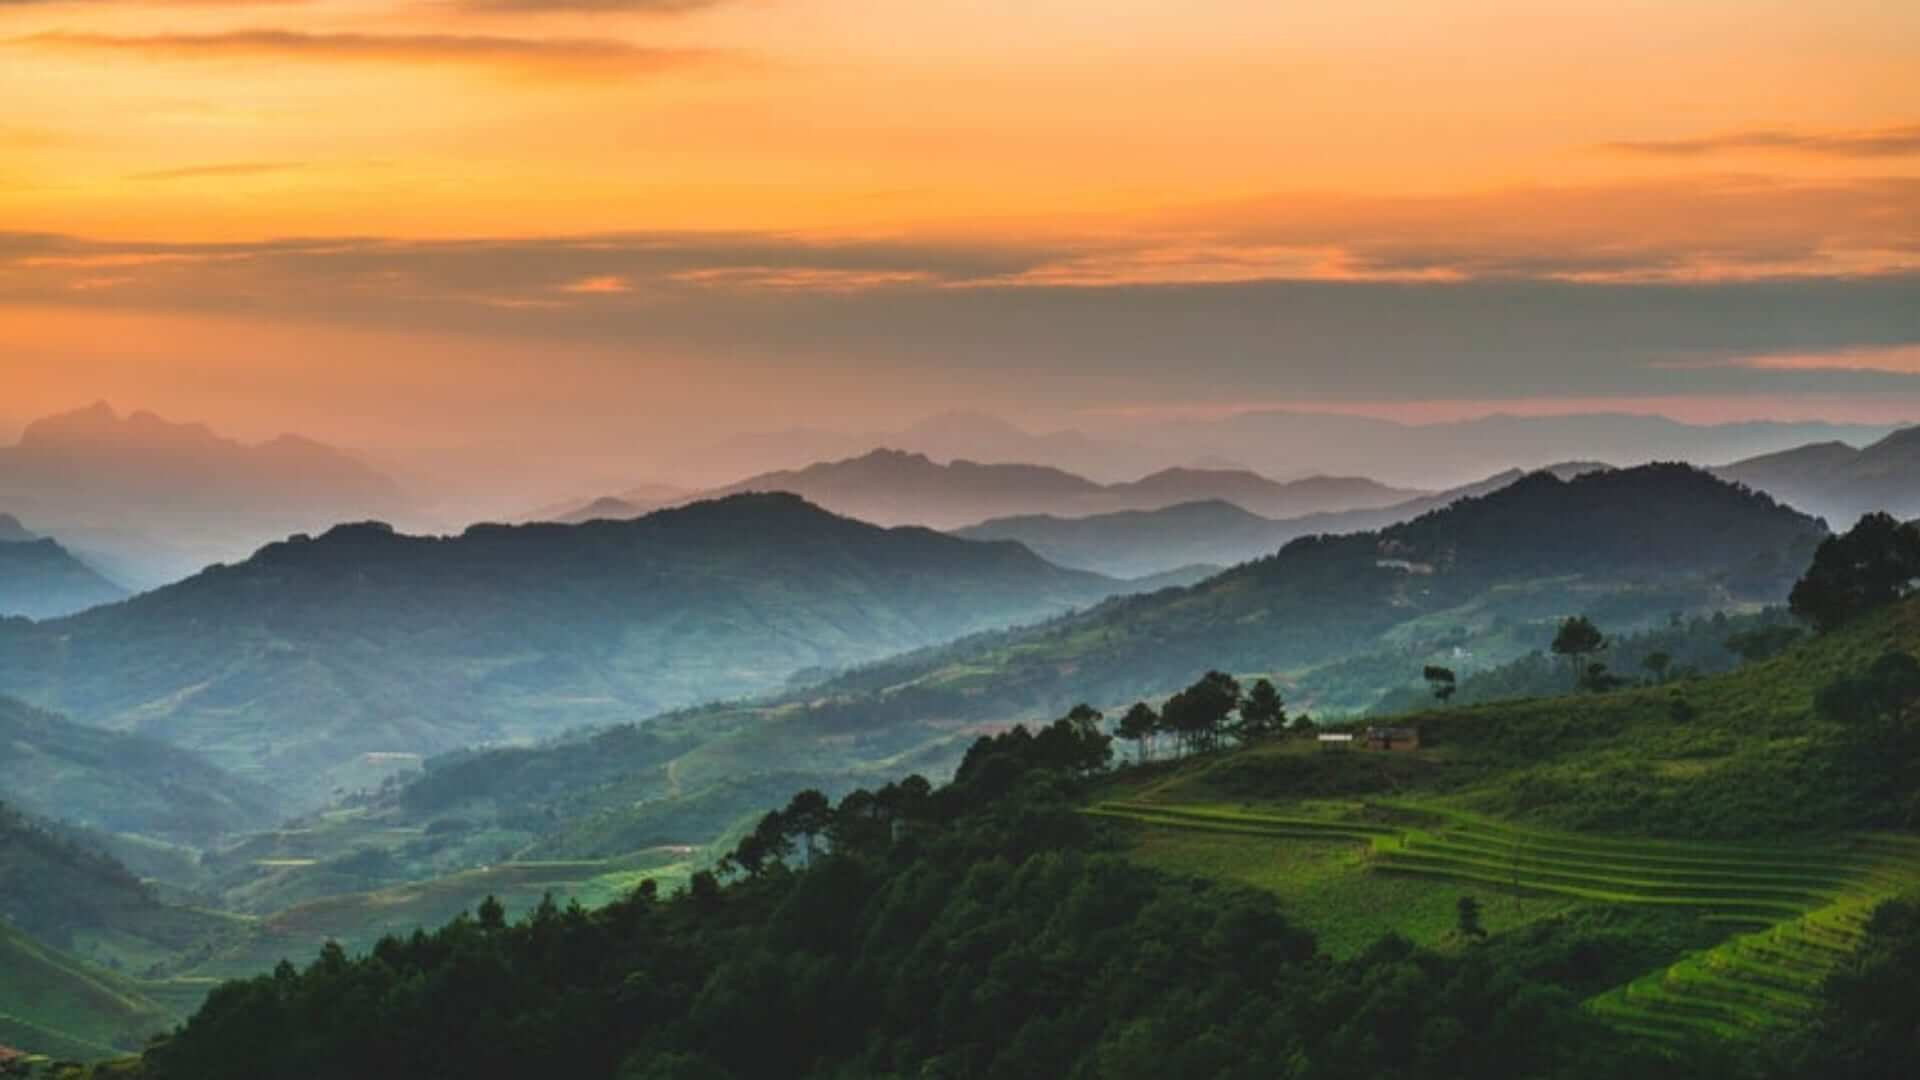 A view of mountain ranges during sunset in Vietnam.